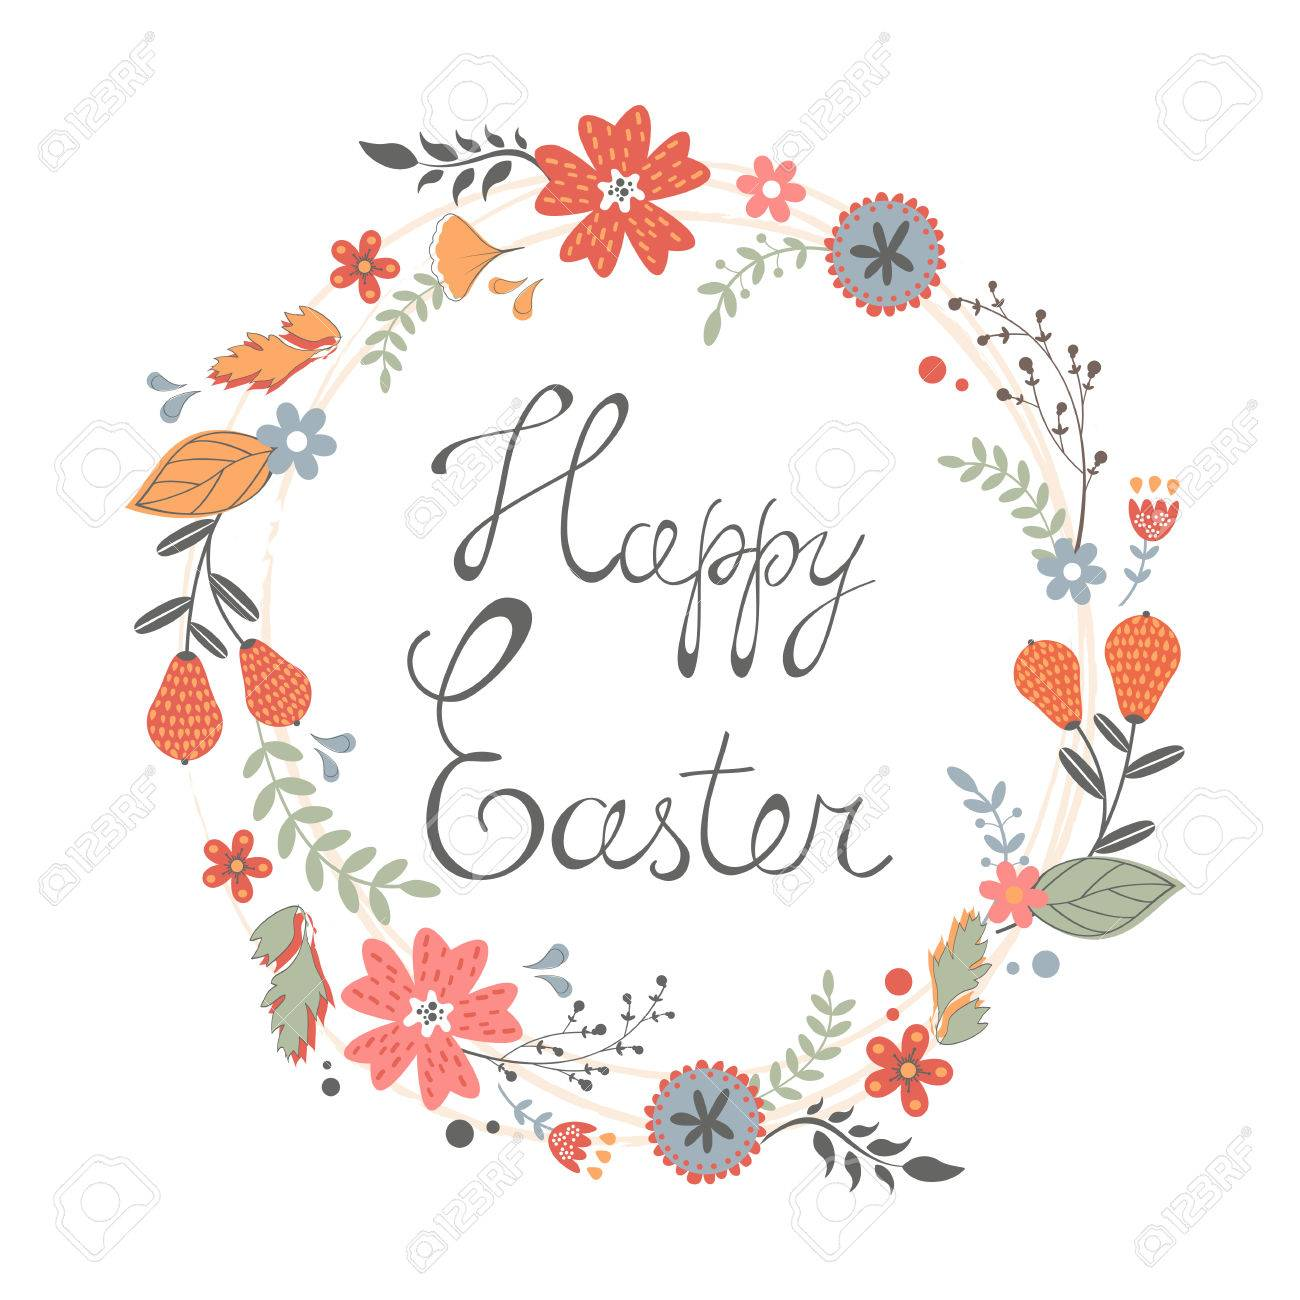 Beautiful Happy Easter Card With Floral Wreath Vector